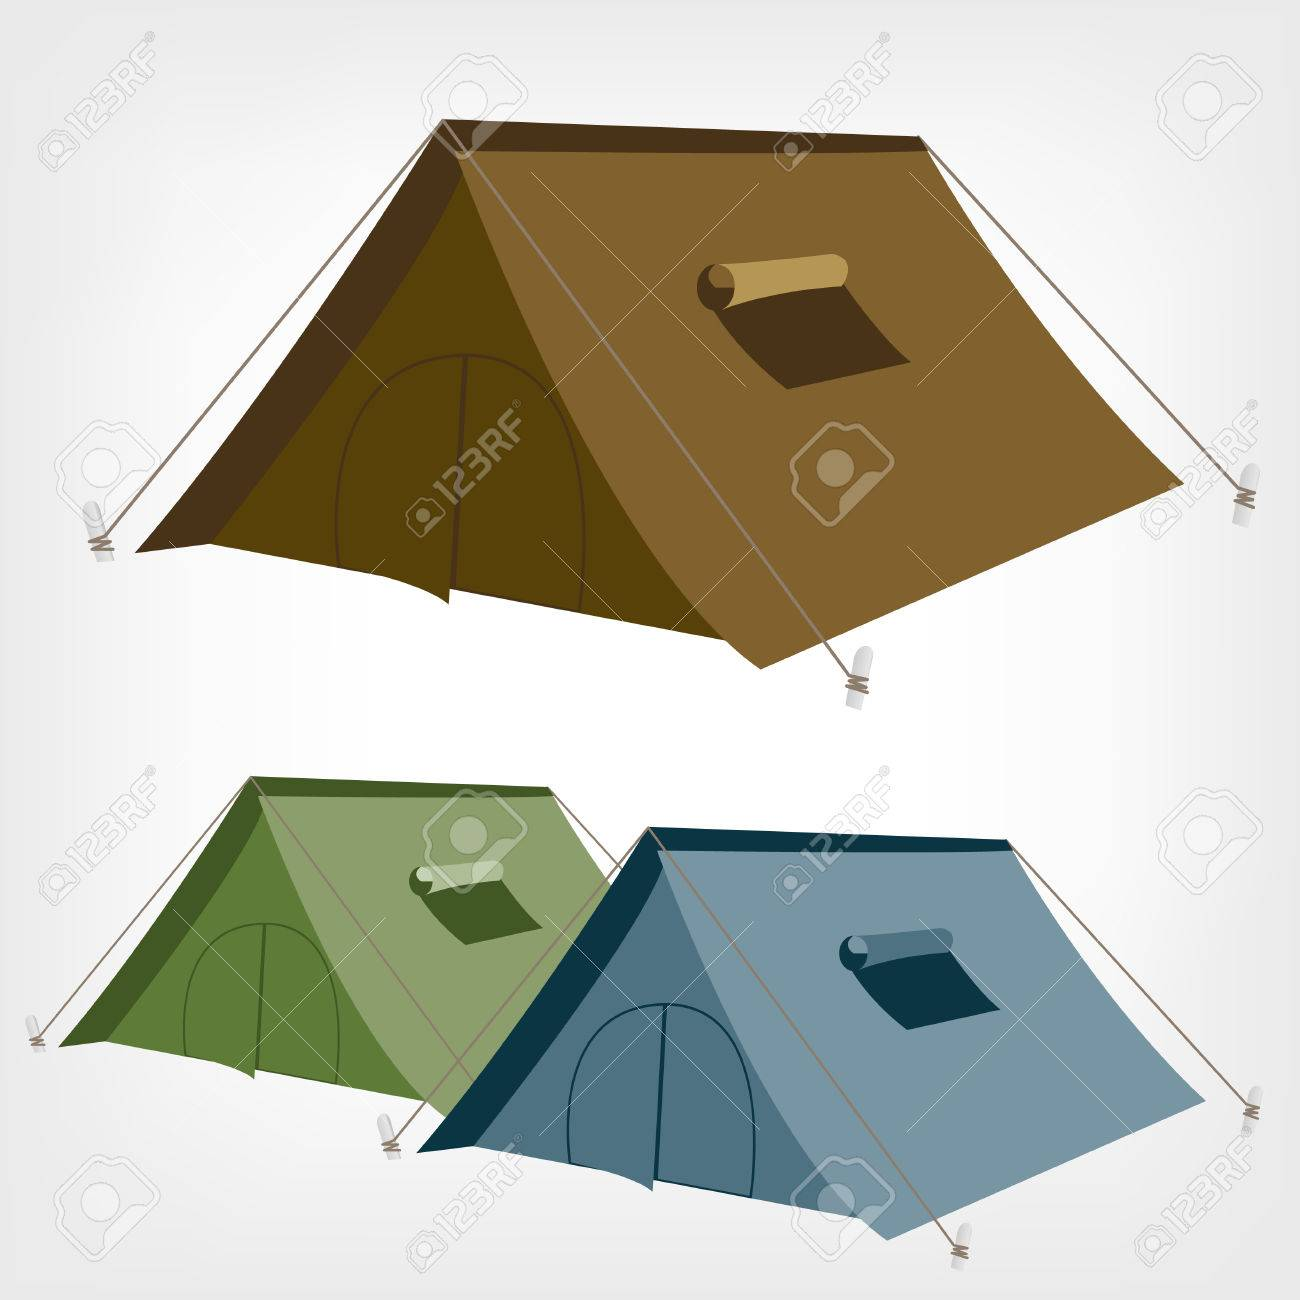 Camping Tent Vector Free Download Camping Tent Vector Tourist